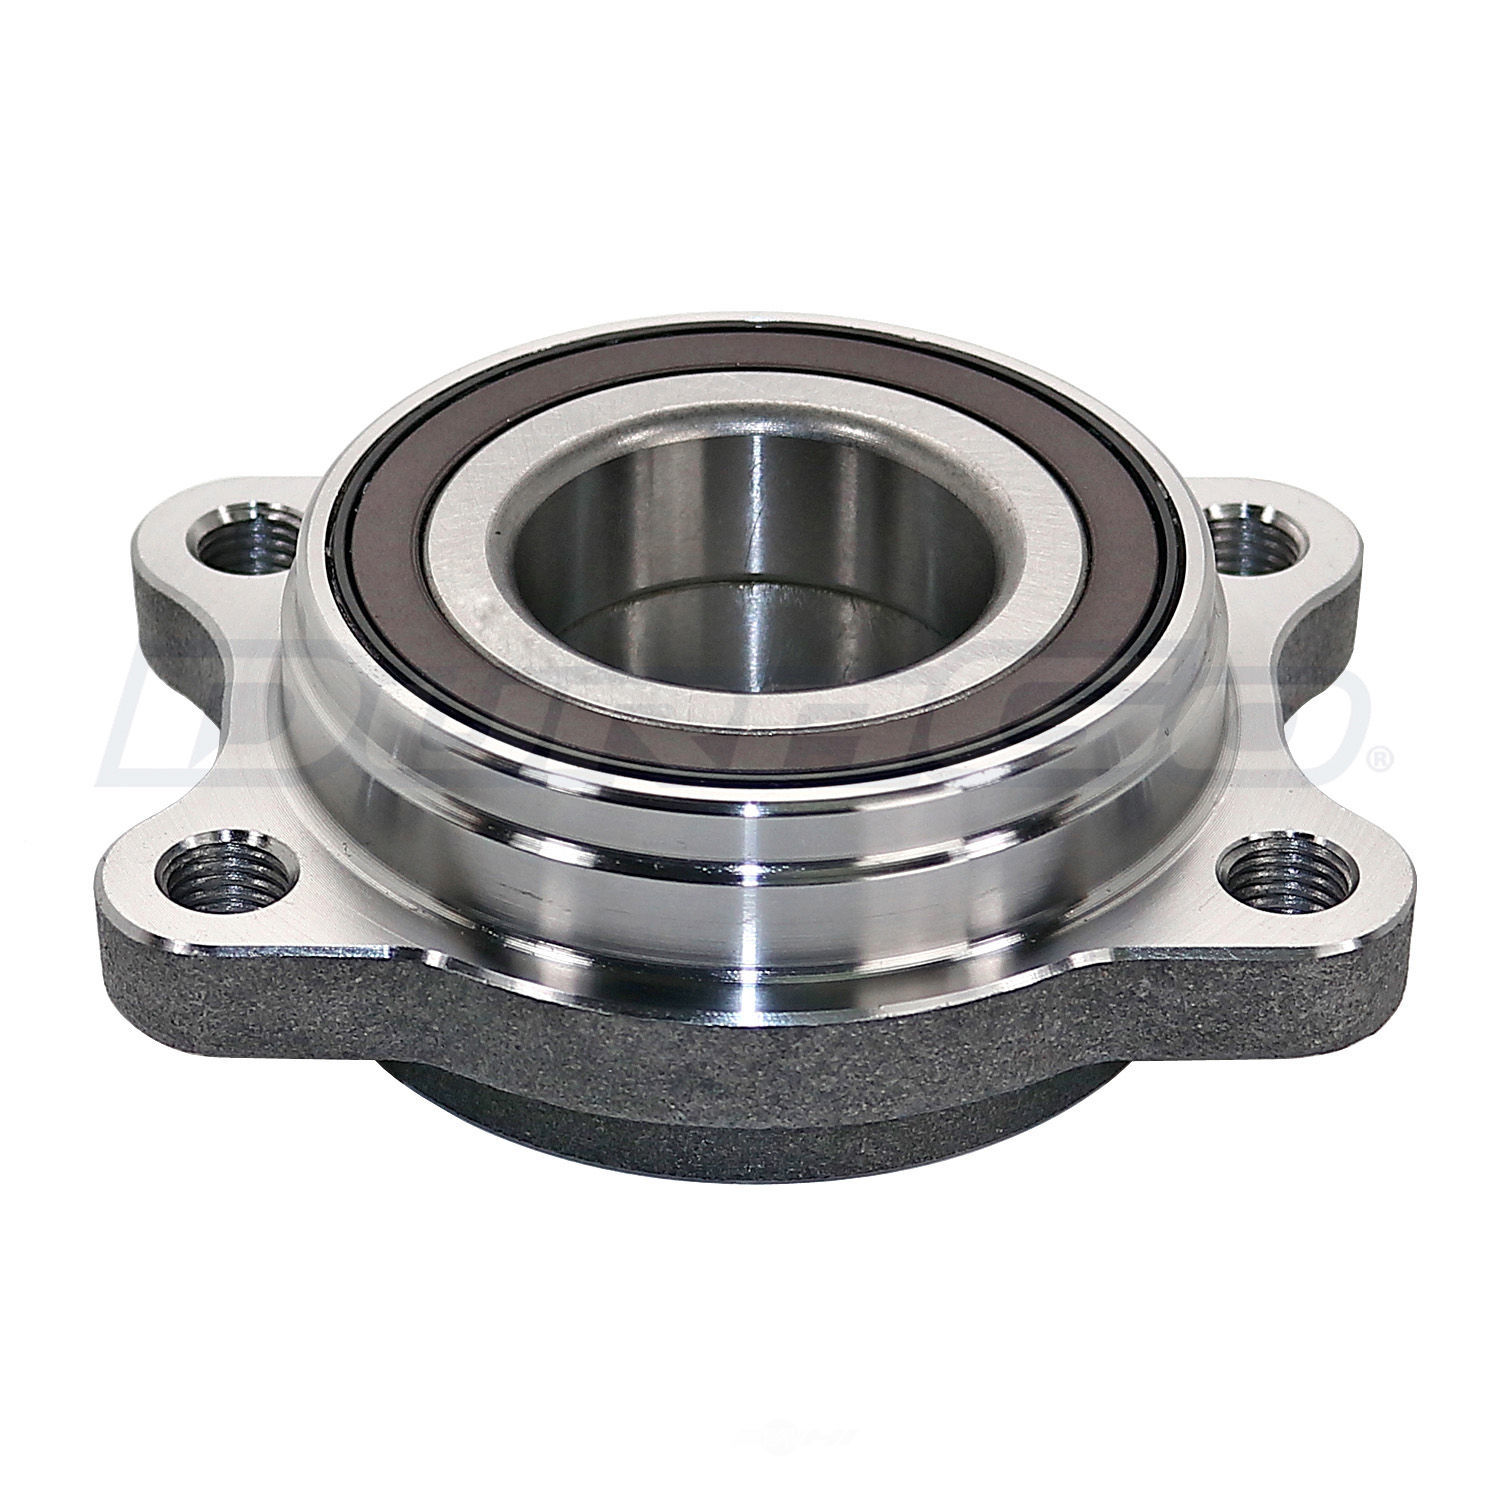 DURAGO - Wheel Bearing Assembly - D48 295-12305